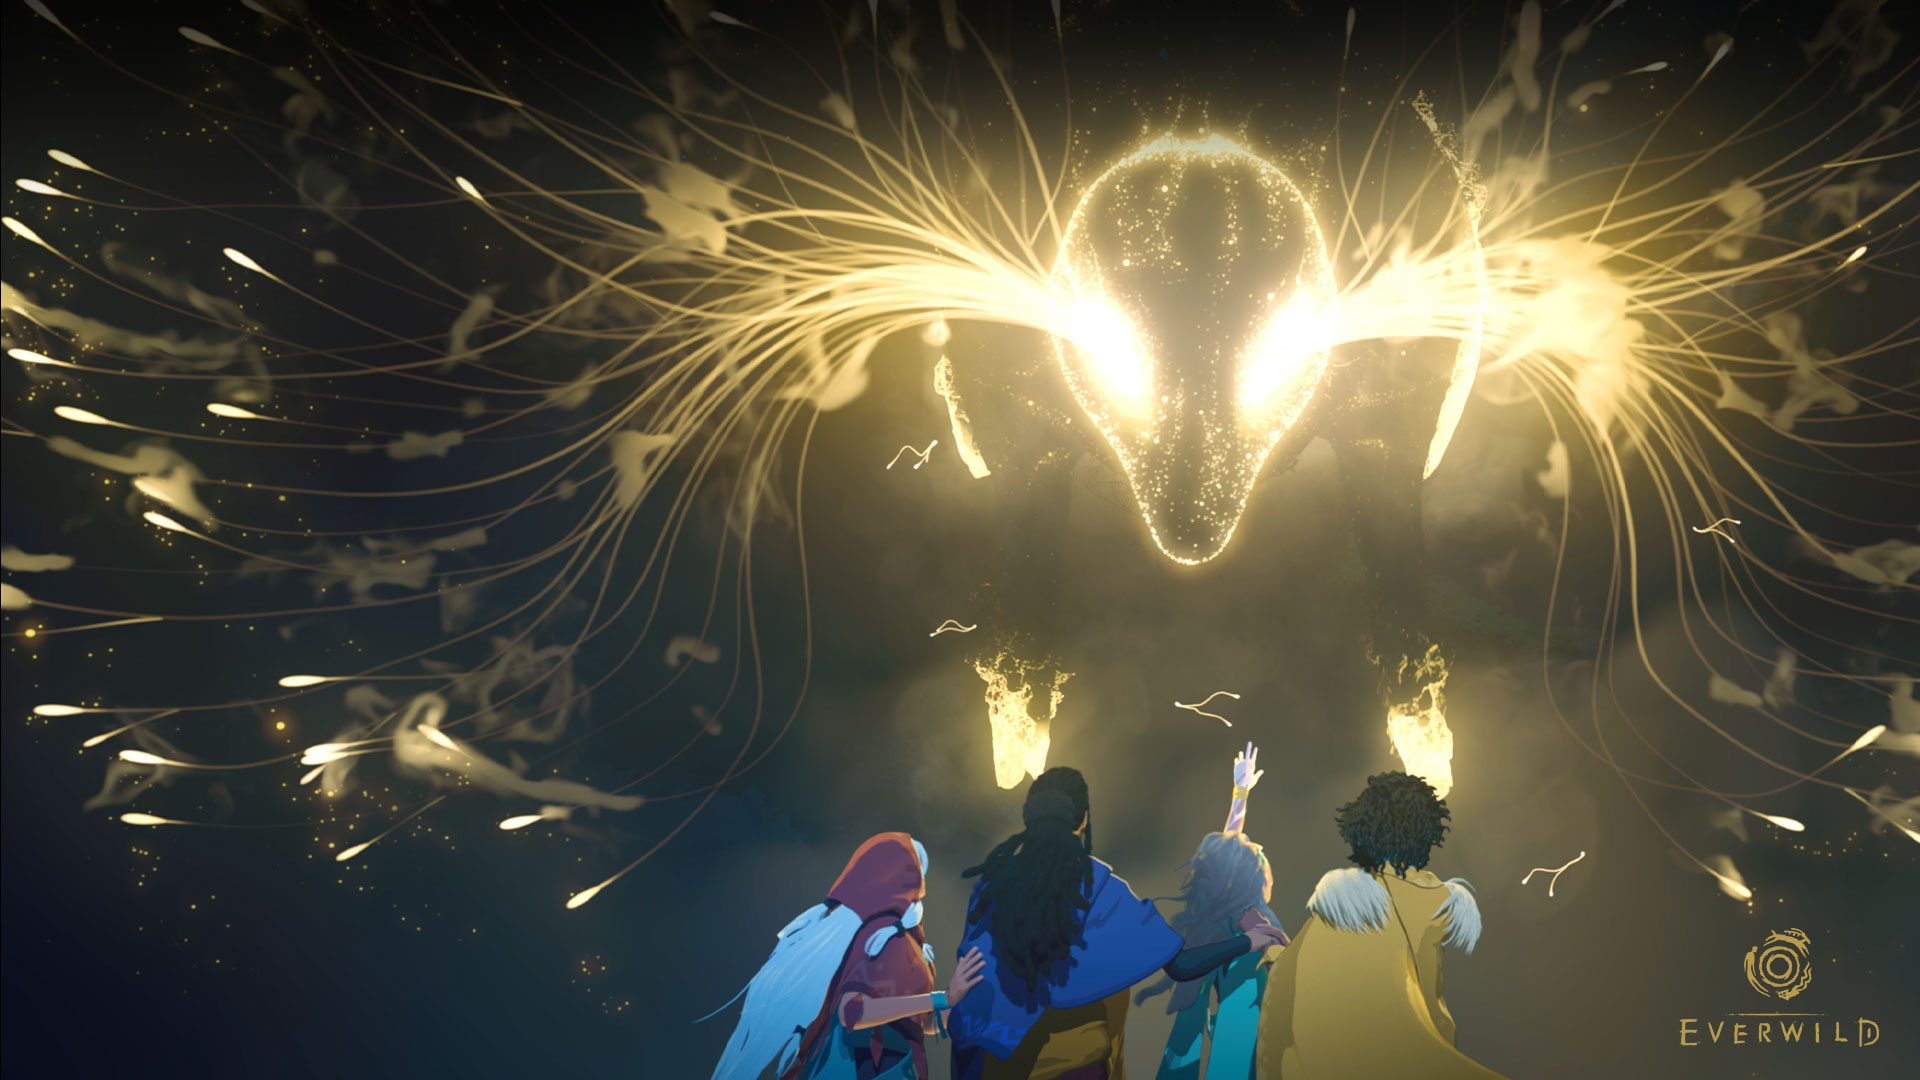 Everwild, a group of characters stand under a deer head made of light.